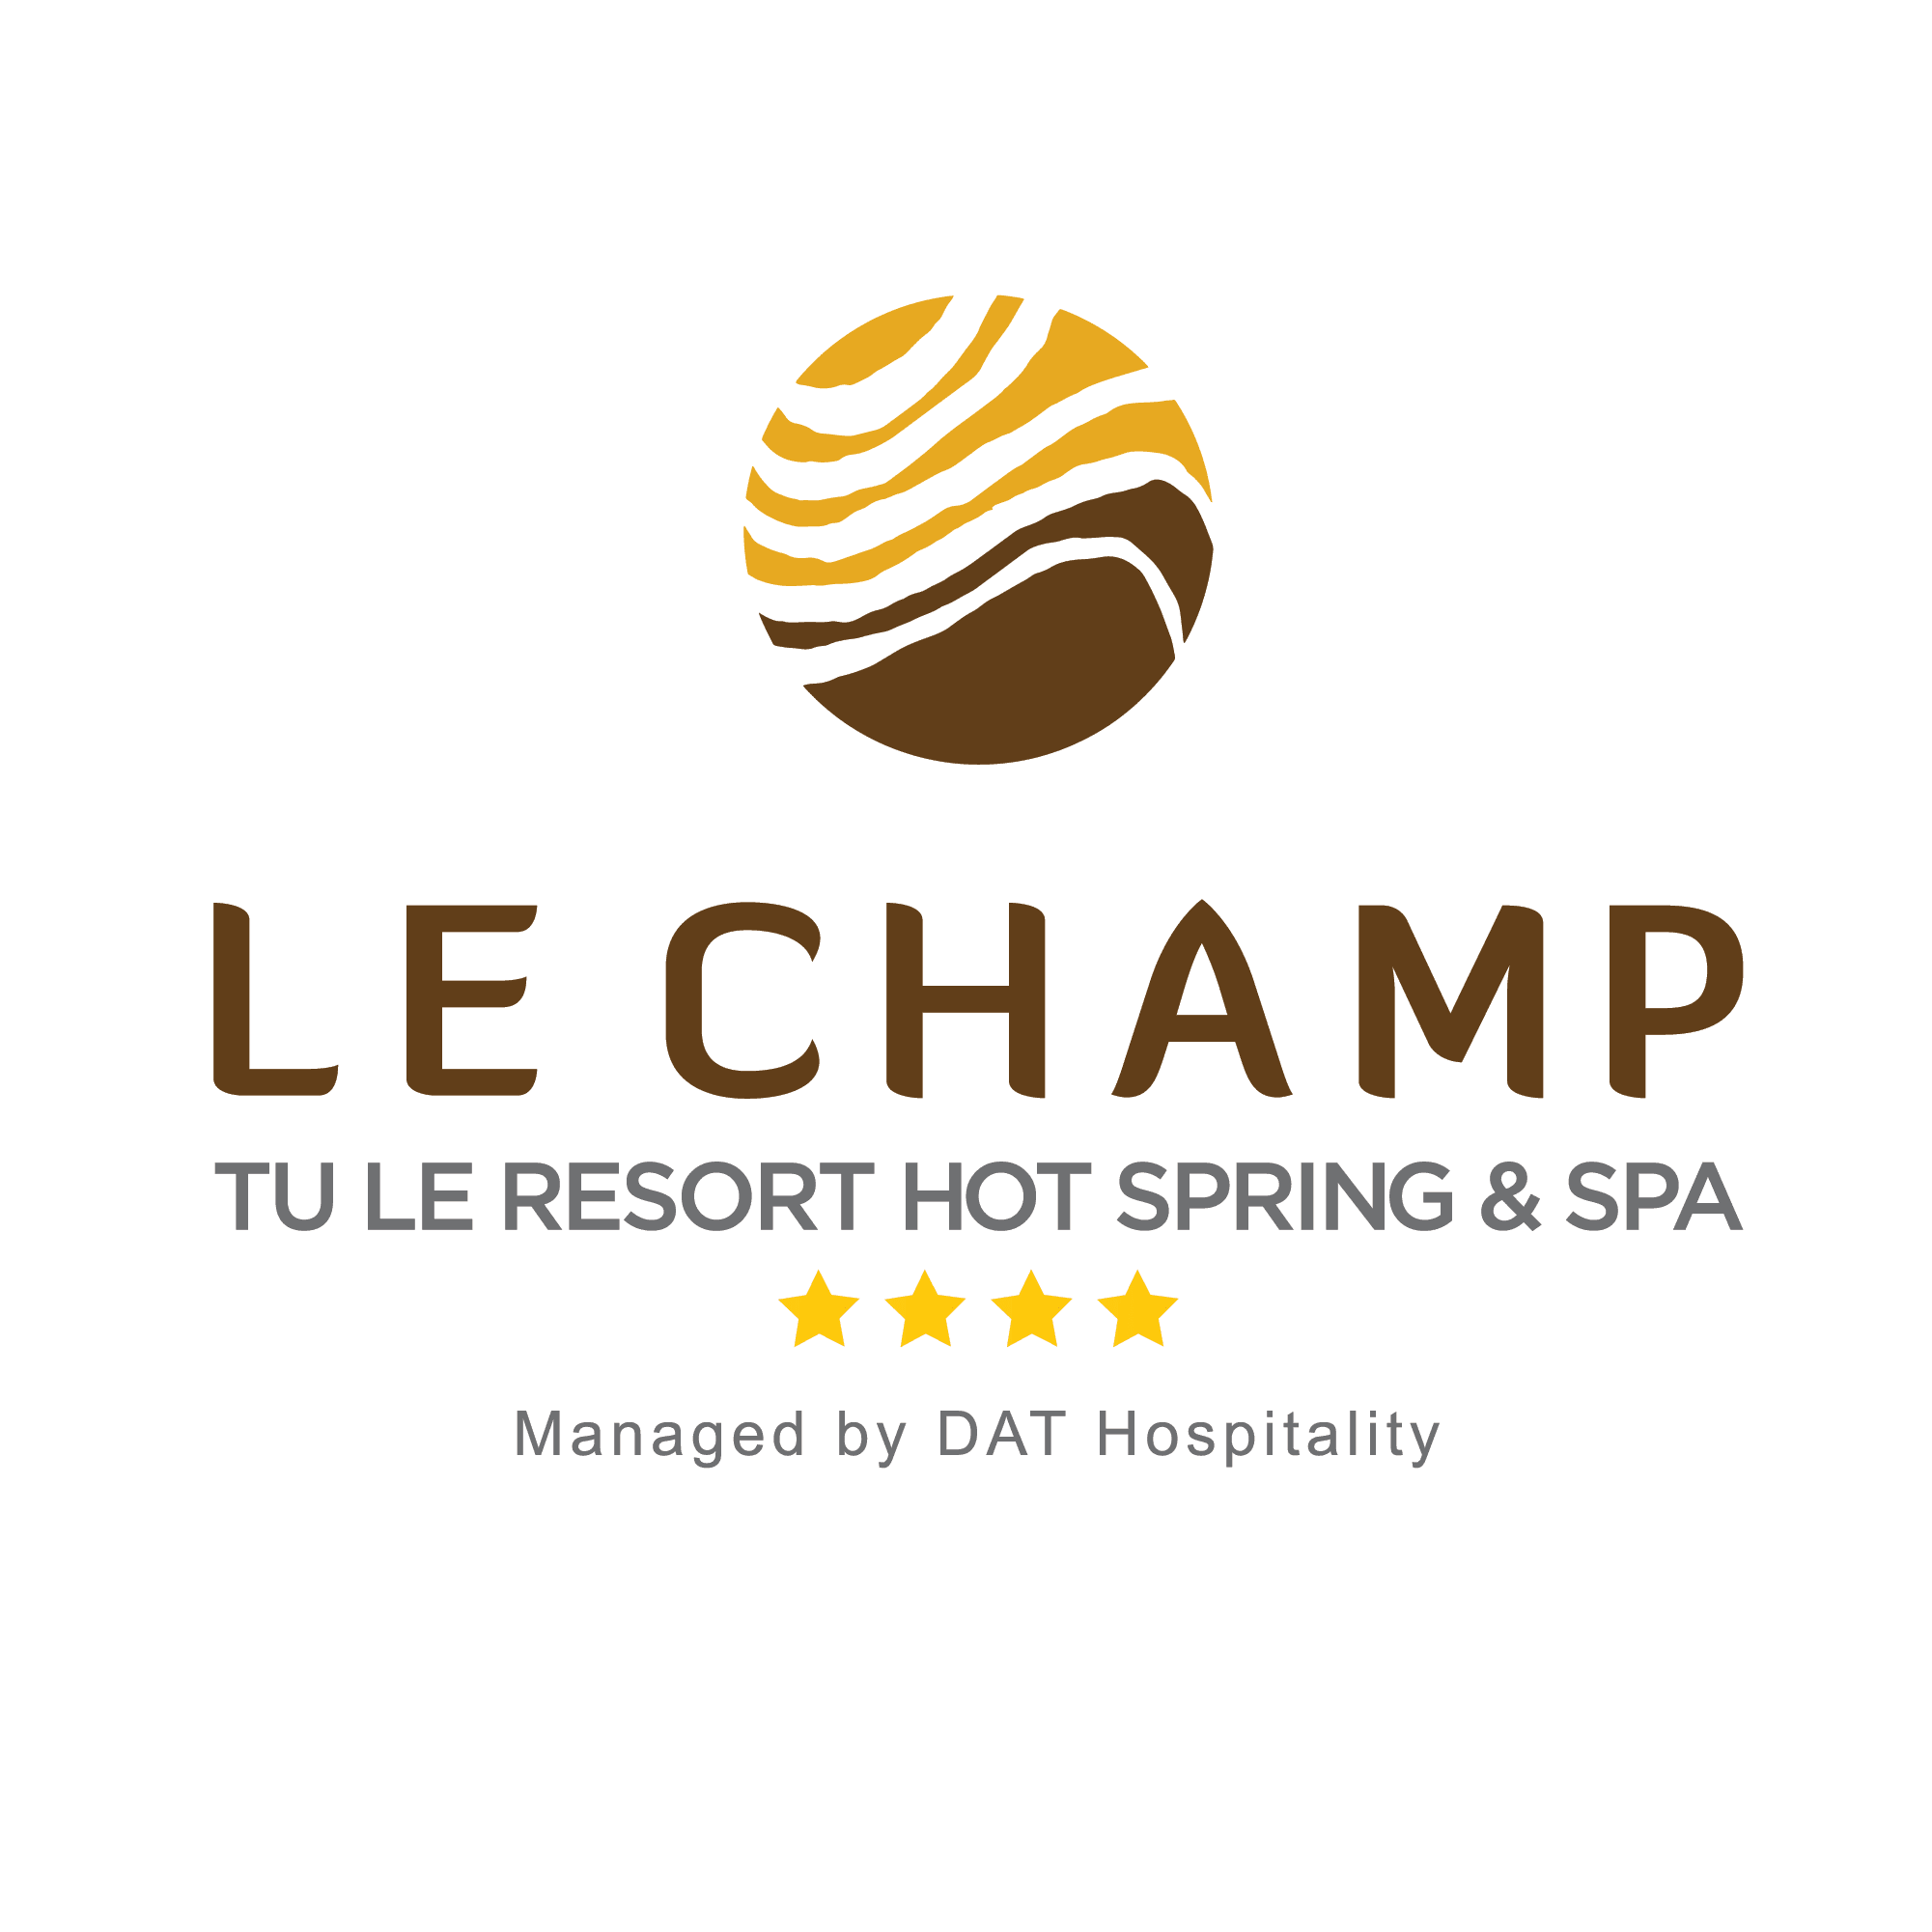 Le Champ Tu Le Resprt Hot Spring & Spa